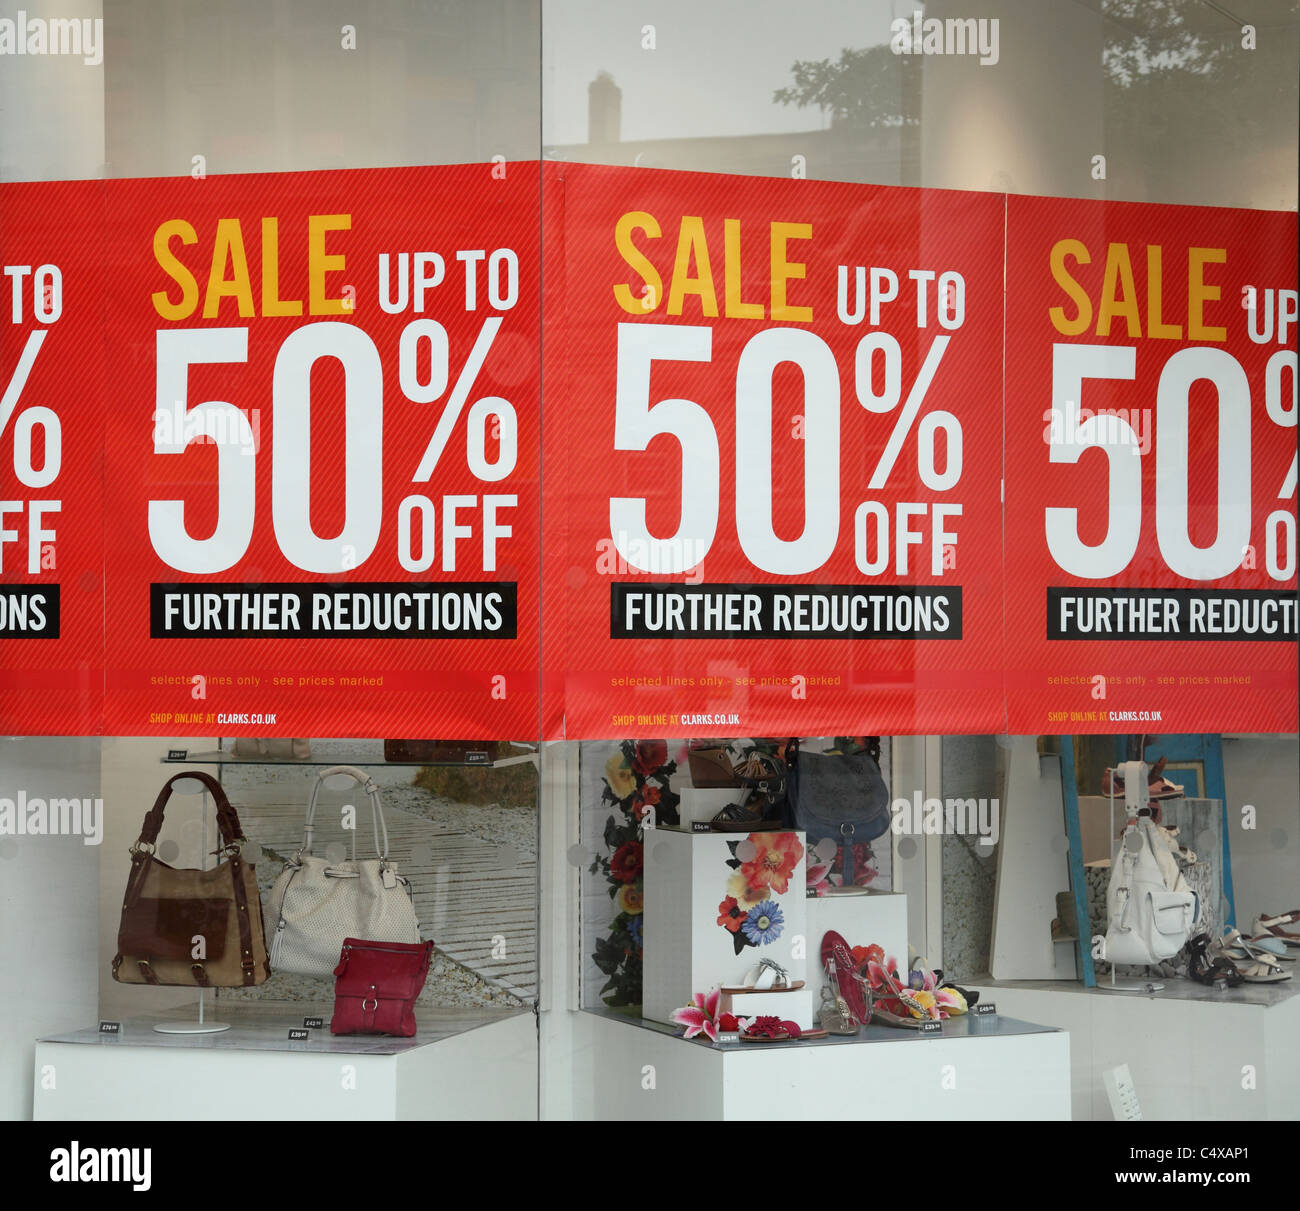 A sale at a Clarks shoe shop in Nottingham, England, U.K. - Stock Image